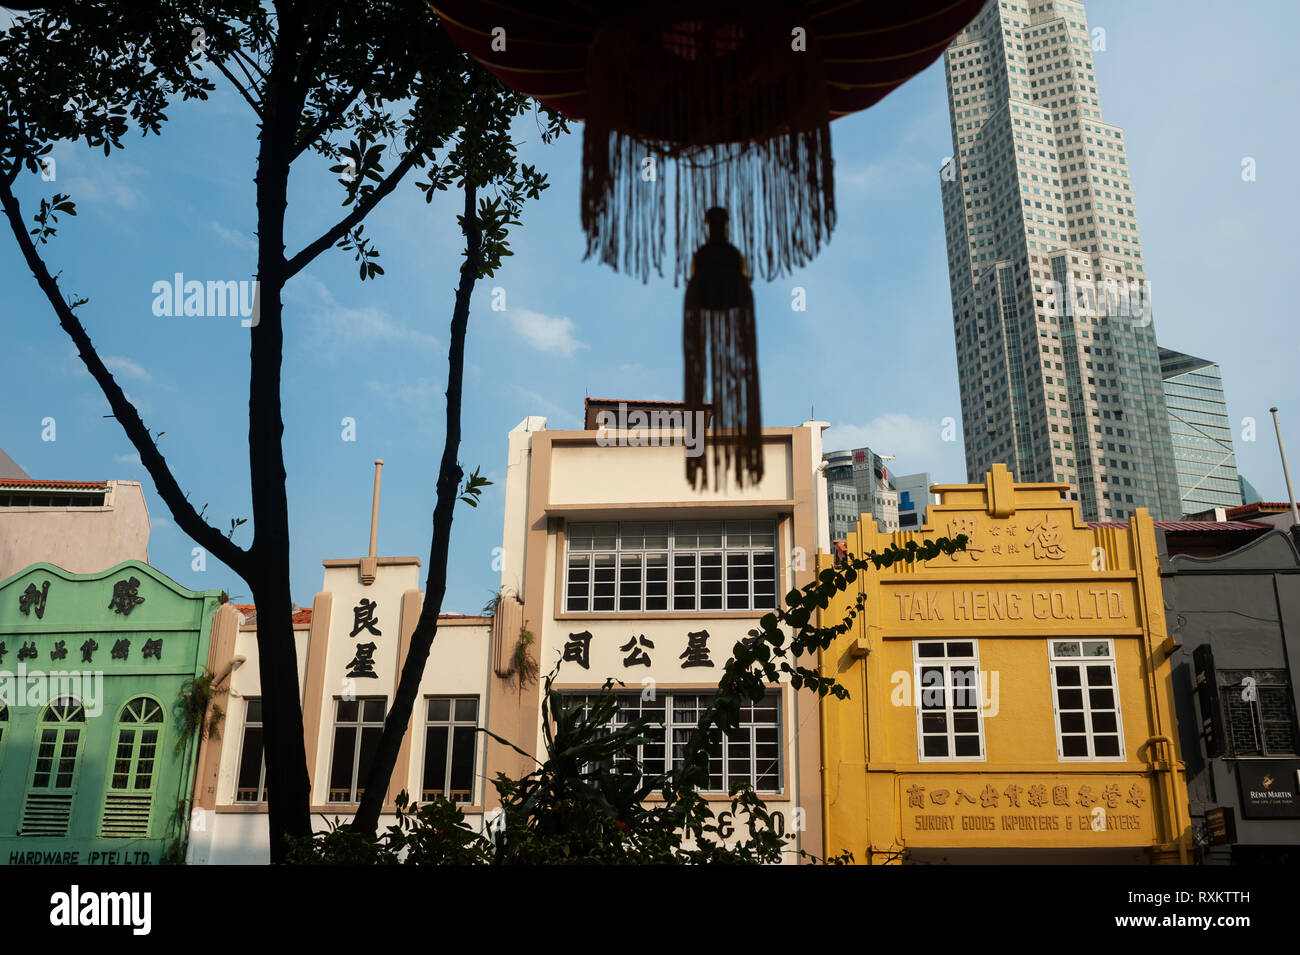 08.03.2019, Singapore, Republic of Singapore, Asia - Old buildings along South Bridge Road with modern skyscraper of the central business district. - Stock Image